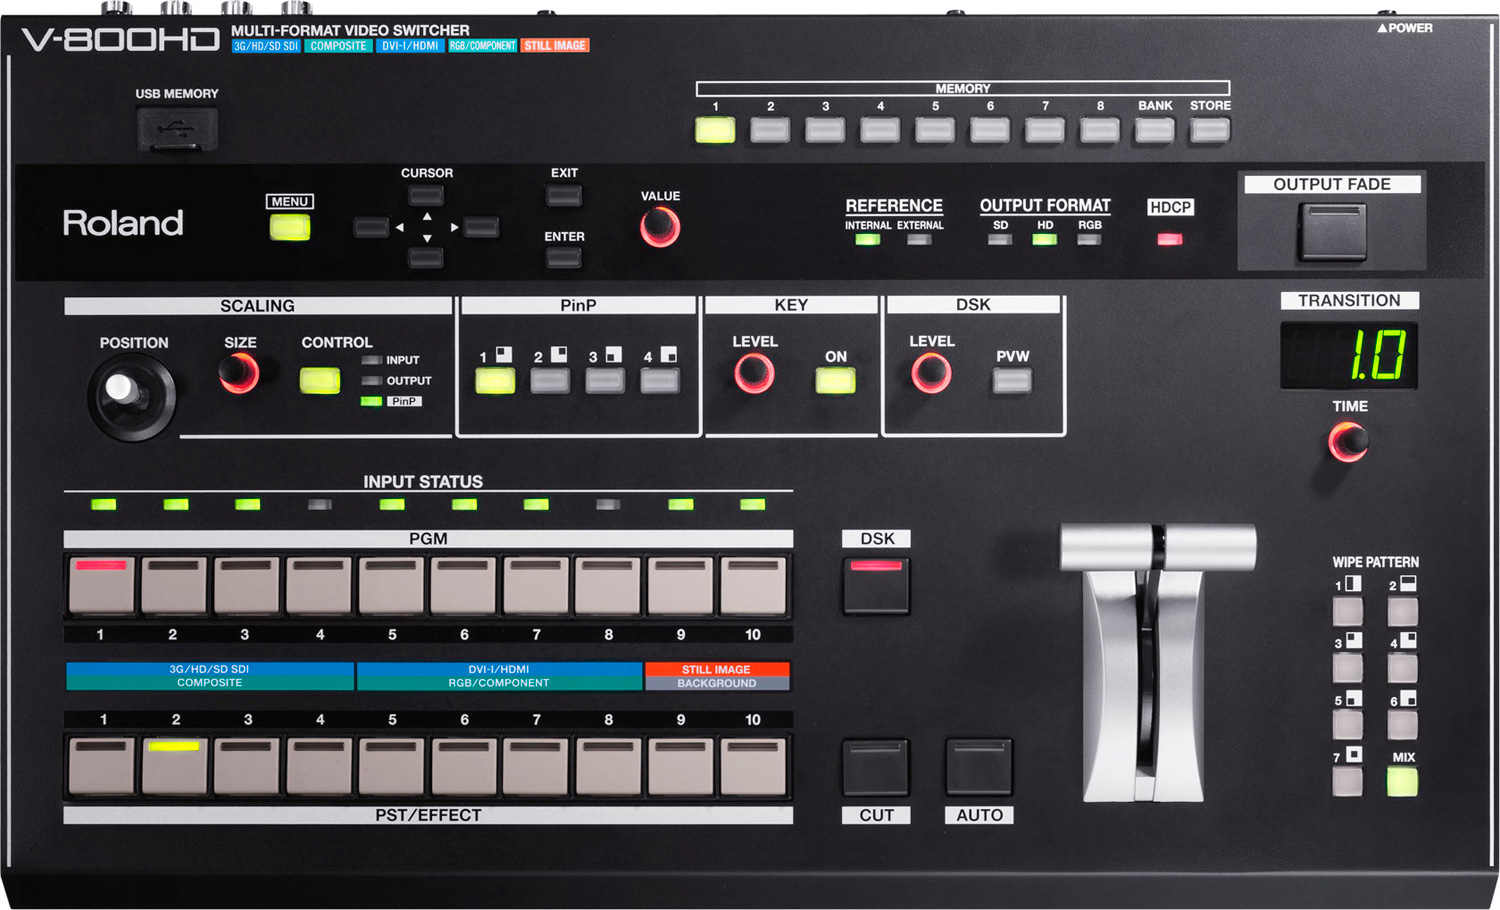 Roland V 800hd 8 Channel Multi Format Video Switcher